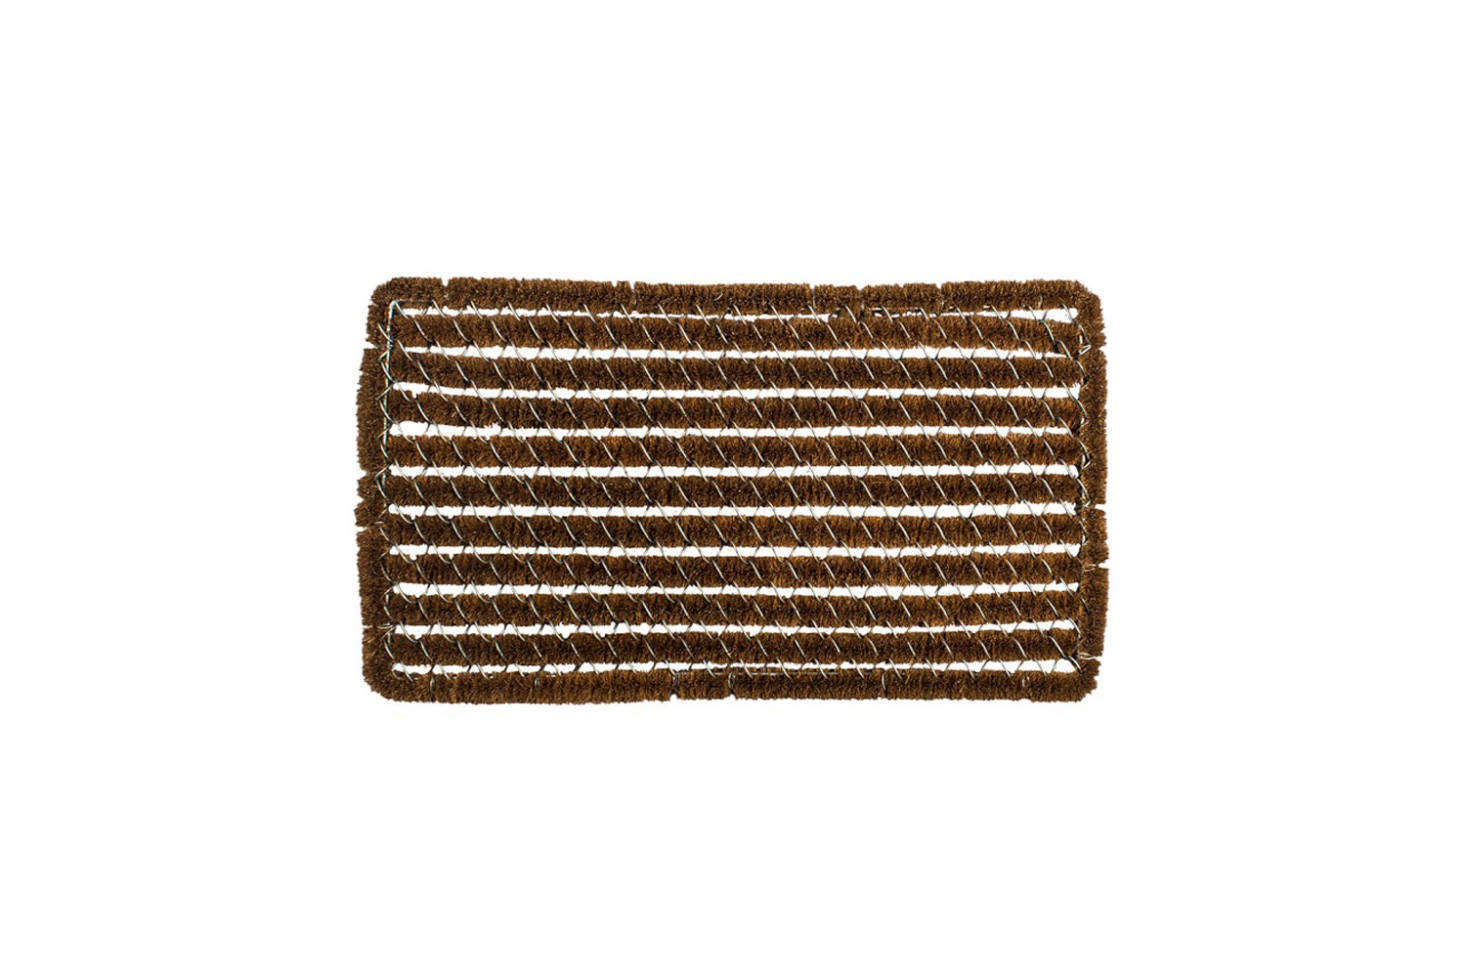 The Williams-Sonoma Rectangle Stripes Wire Brush Doormat is $69.95 for the regular size; it also comes in a long size for $89.95 at Williams-Sonoma.